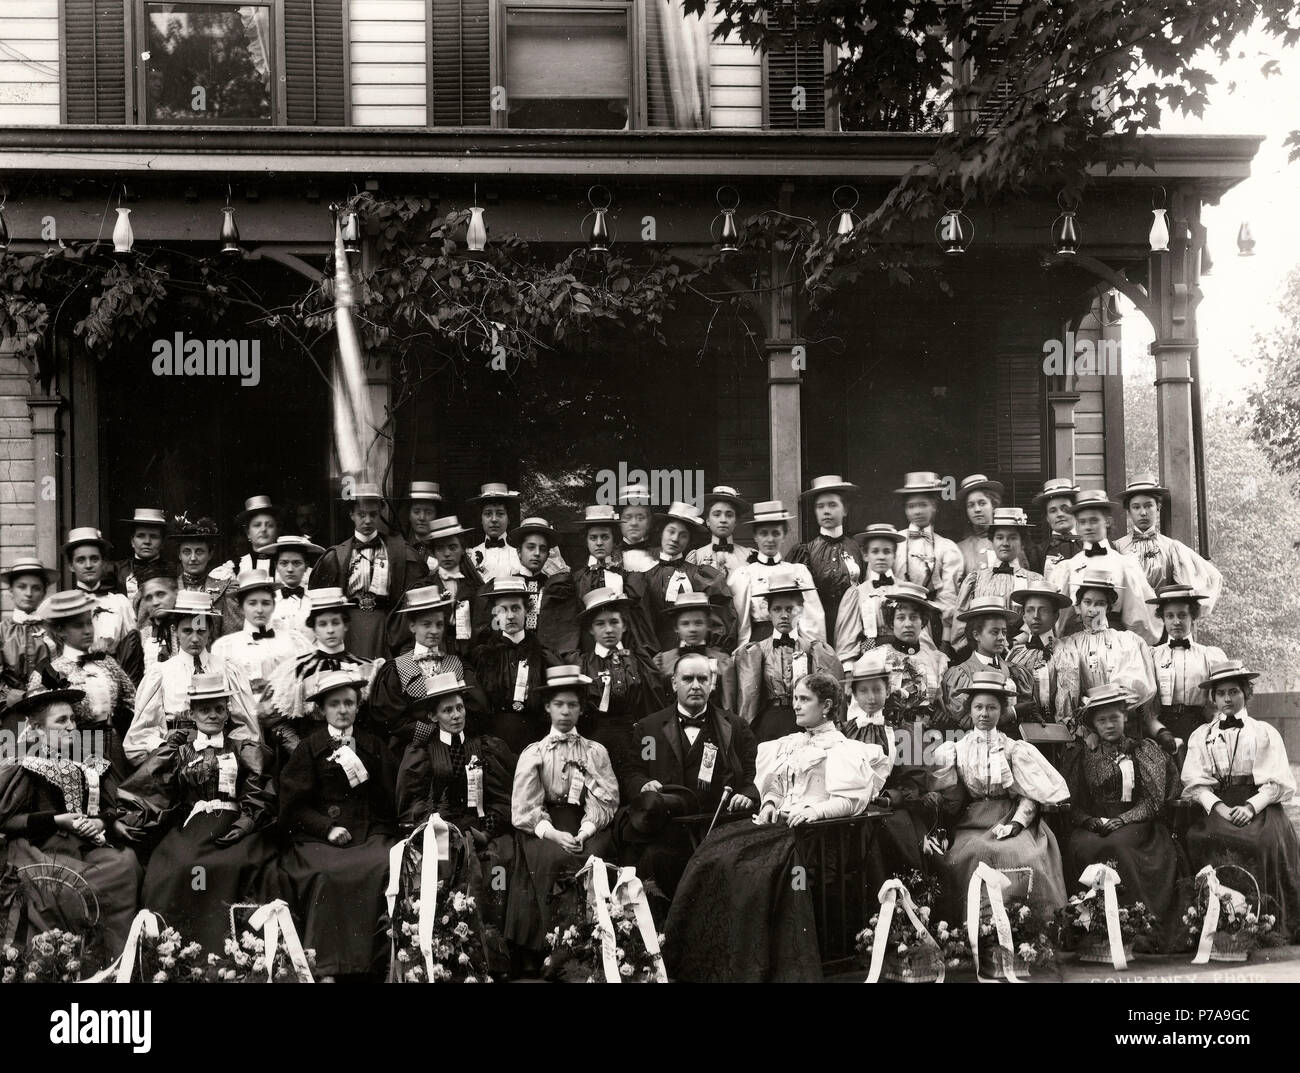 William and Ida McKinley (to her husband's left) pose with members of the 'Flower Delegation' from Oil City, Pennsylvania, before the McKinley home. Although women could not vote in most states, they might influence male relatives and were encouraged to visit Canton, Ohio. 1896 Presidential Campaign - Stock Image